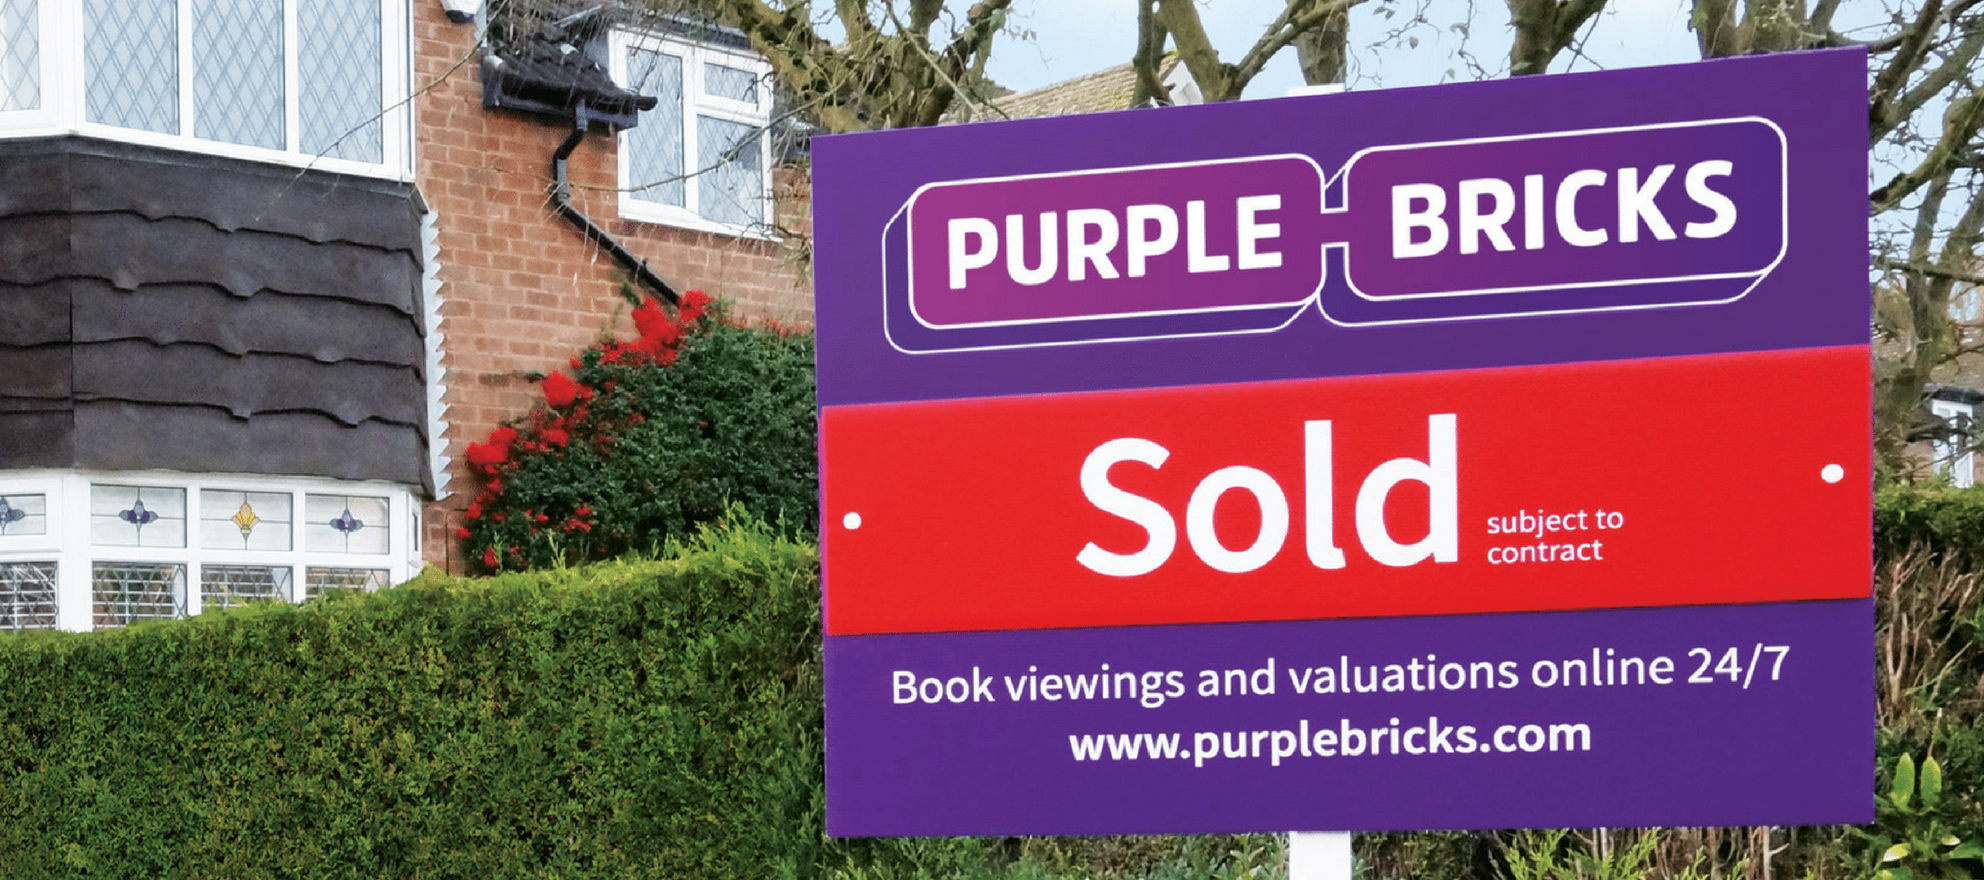 Purplebricks us launch